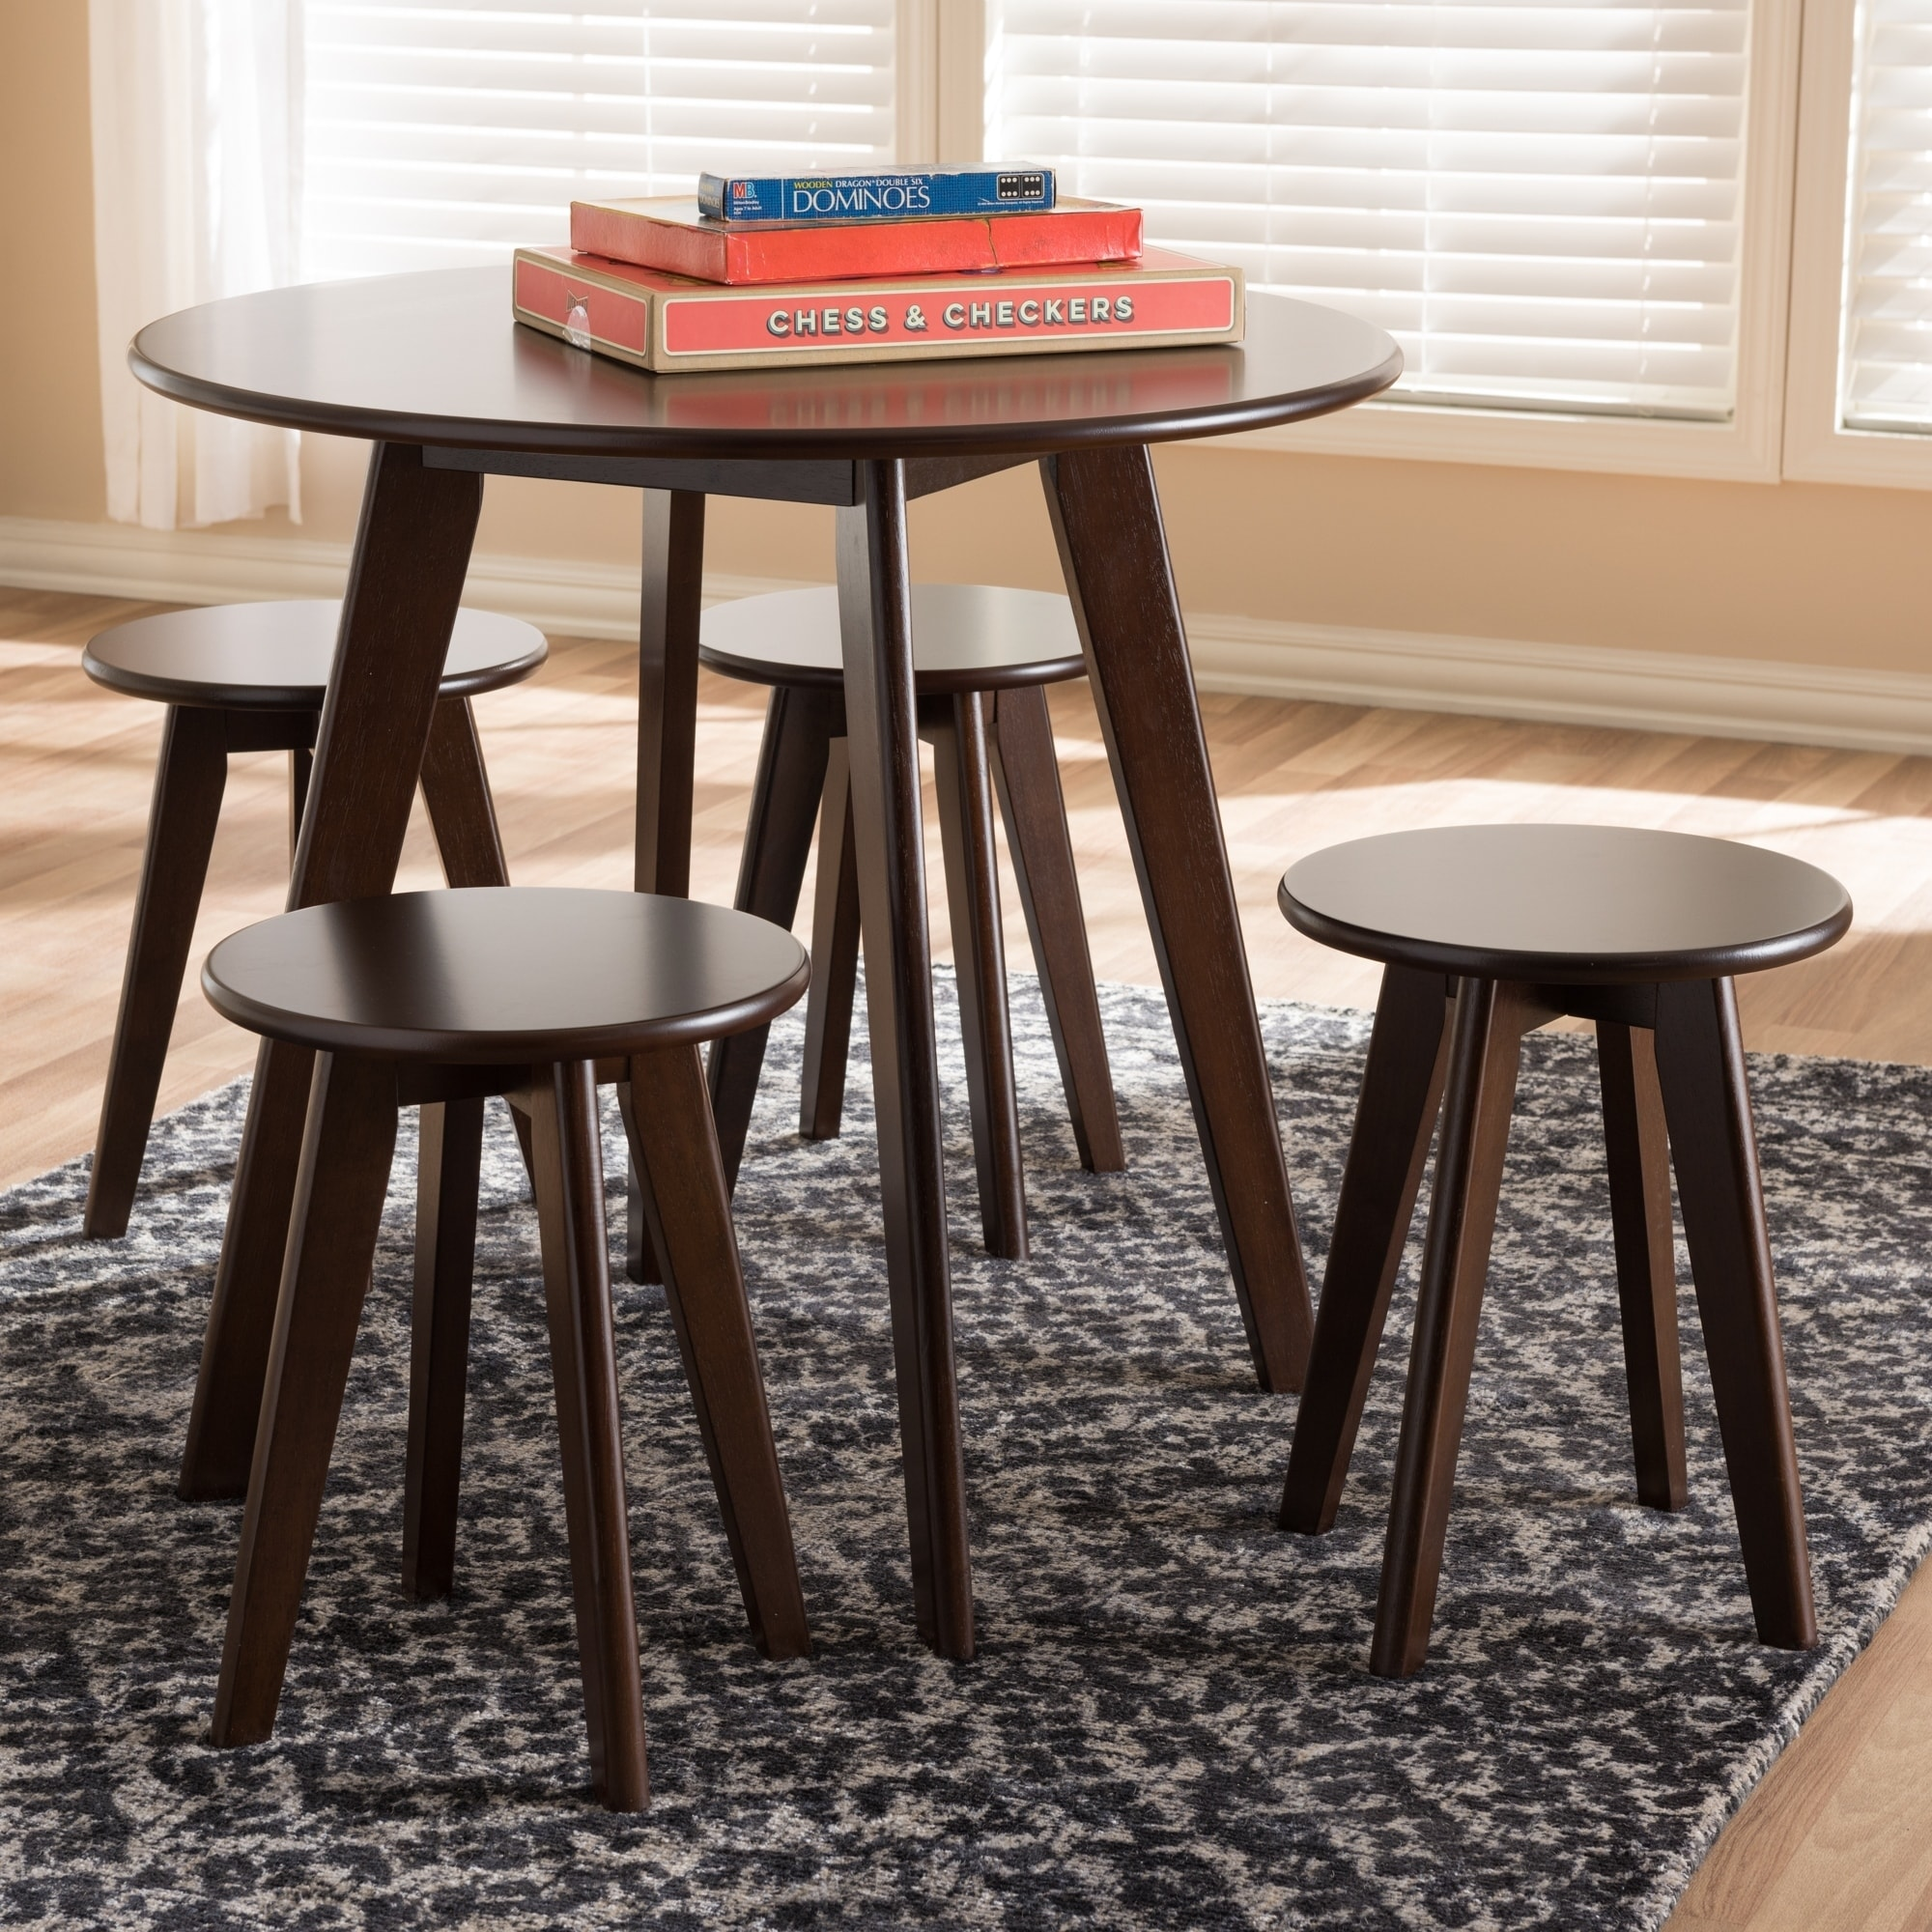 Baxton Studio Mid-Century Walnut Finished Wood 5-Piece Dining Set by